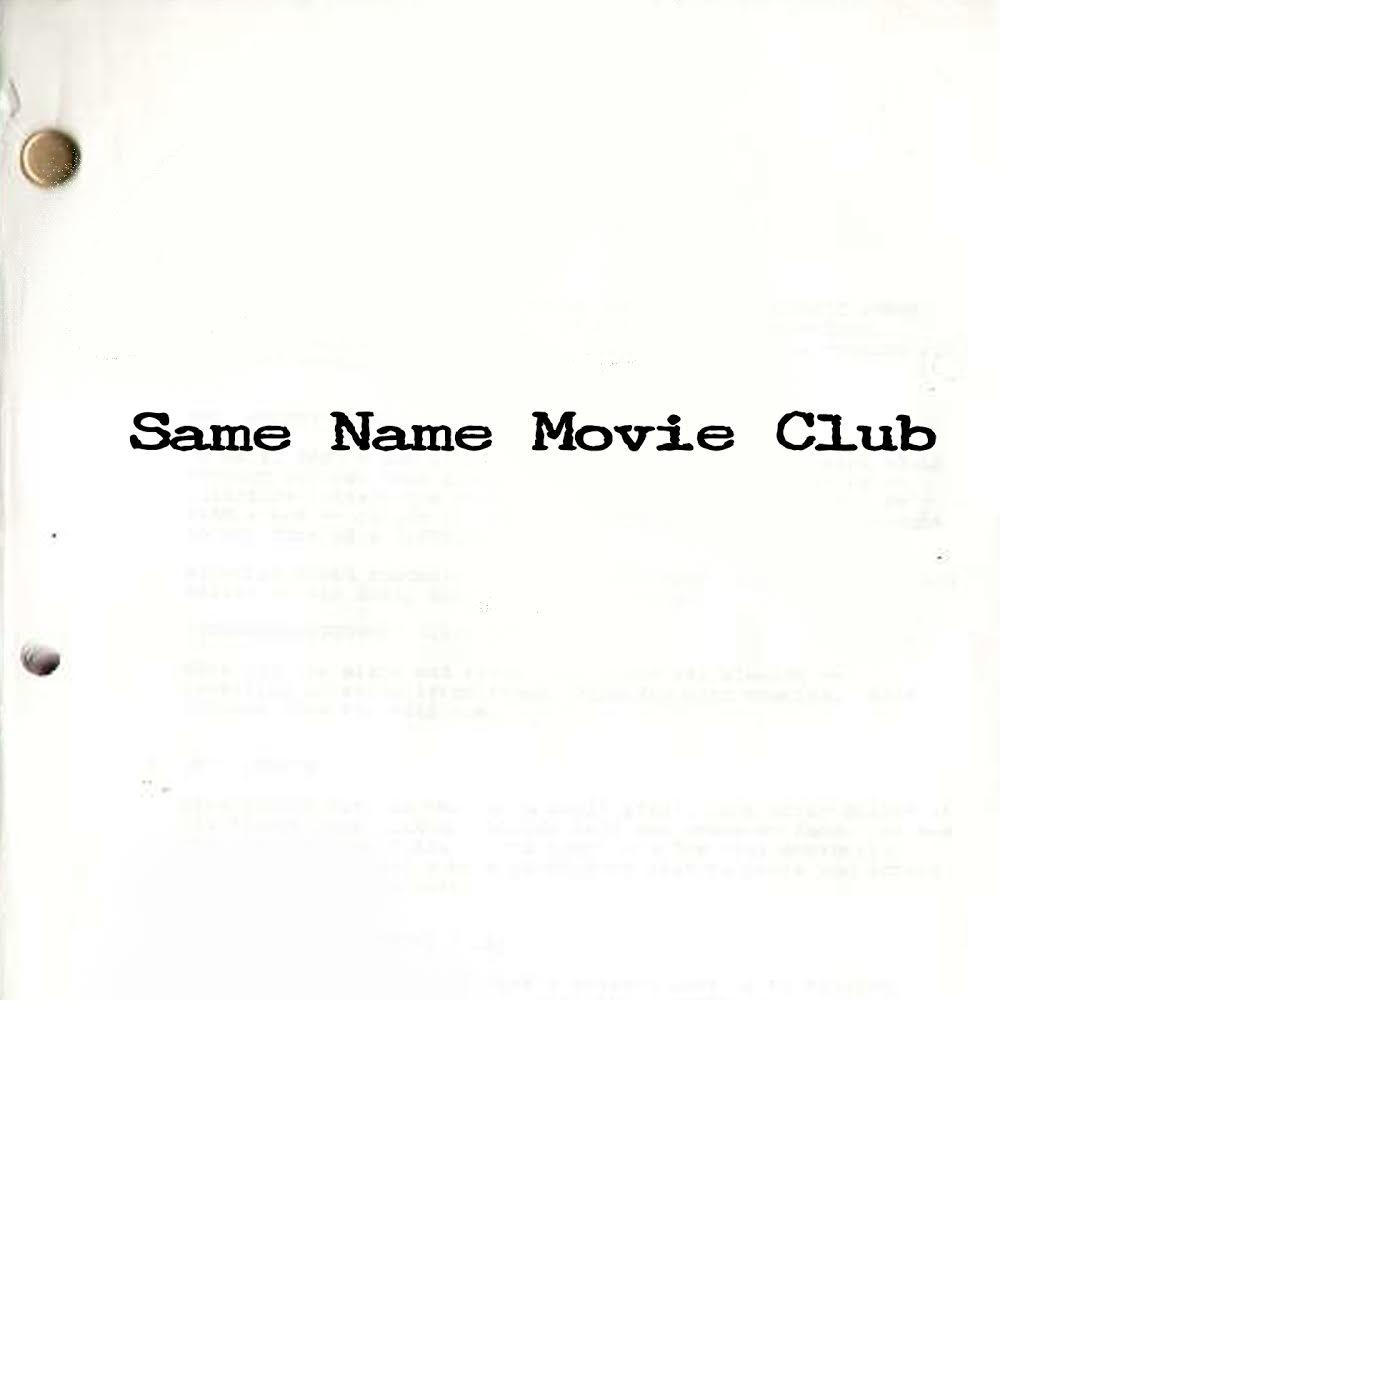 Same Name Movie Club